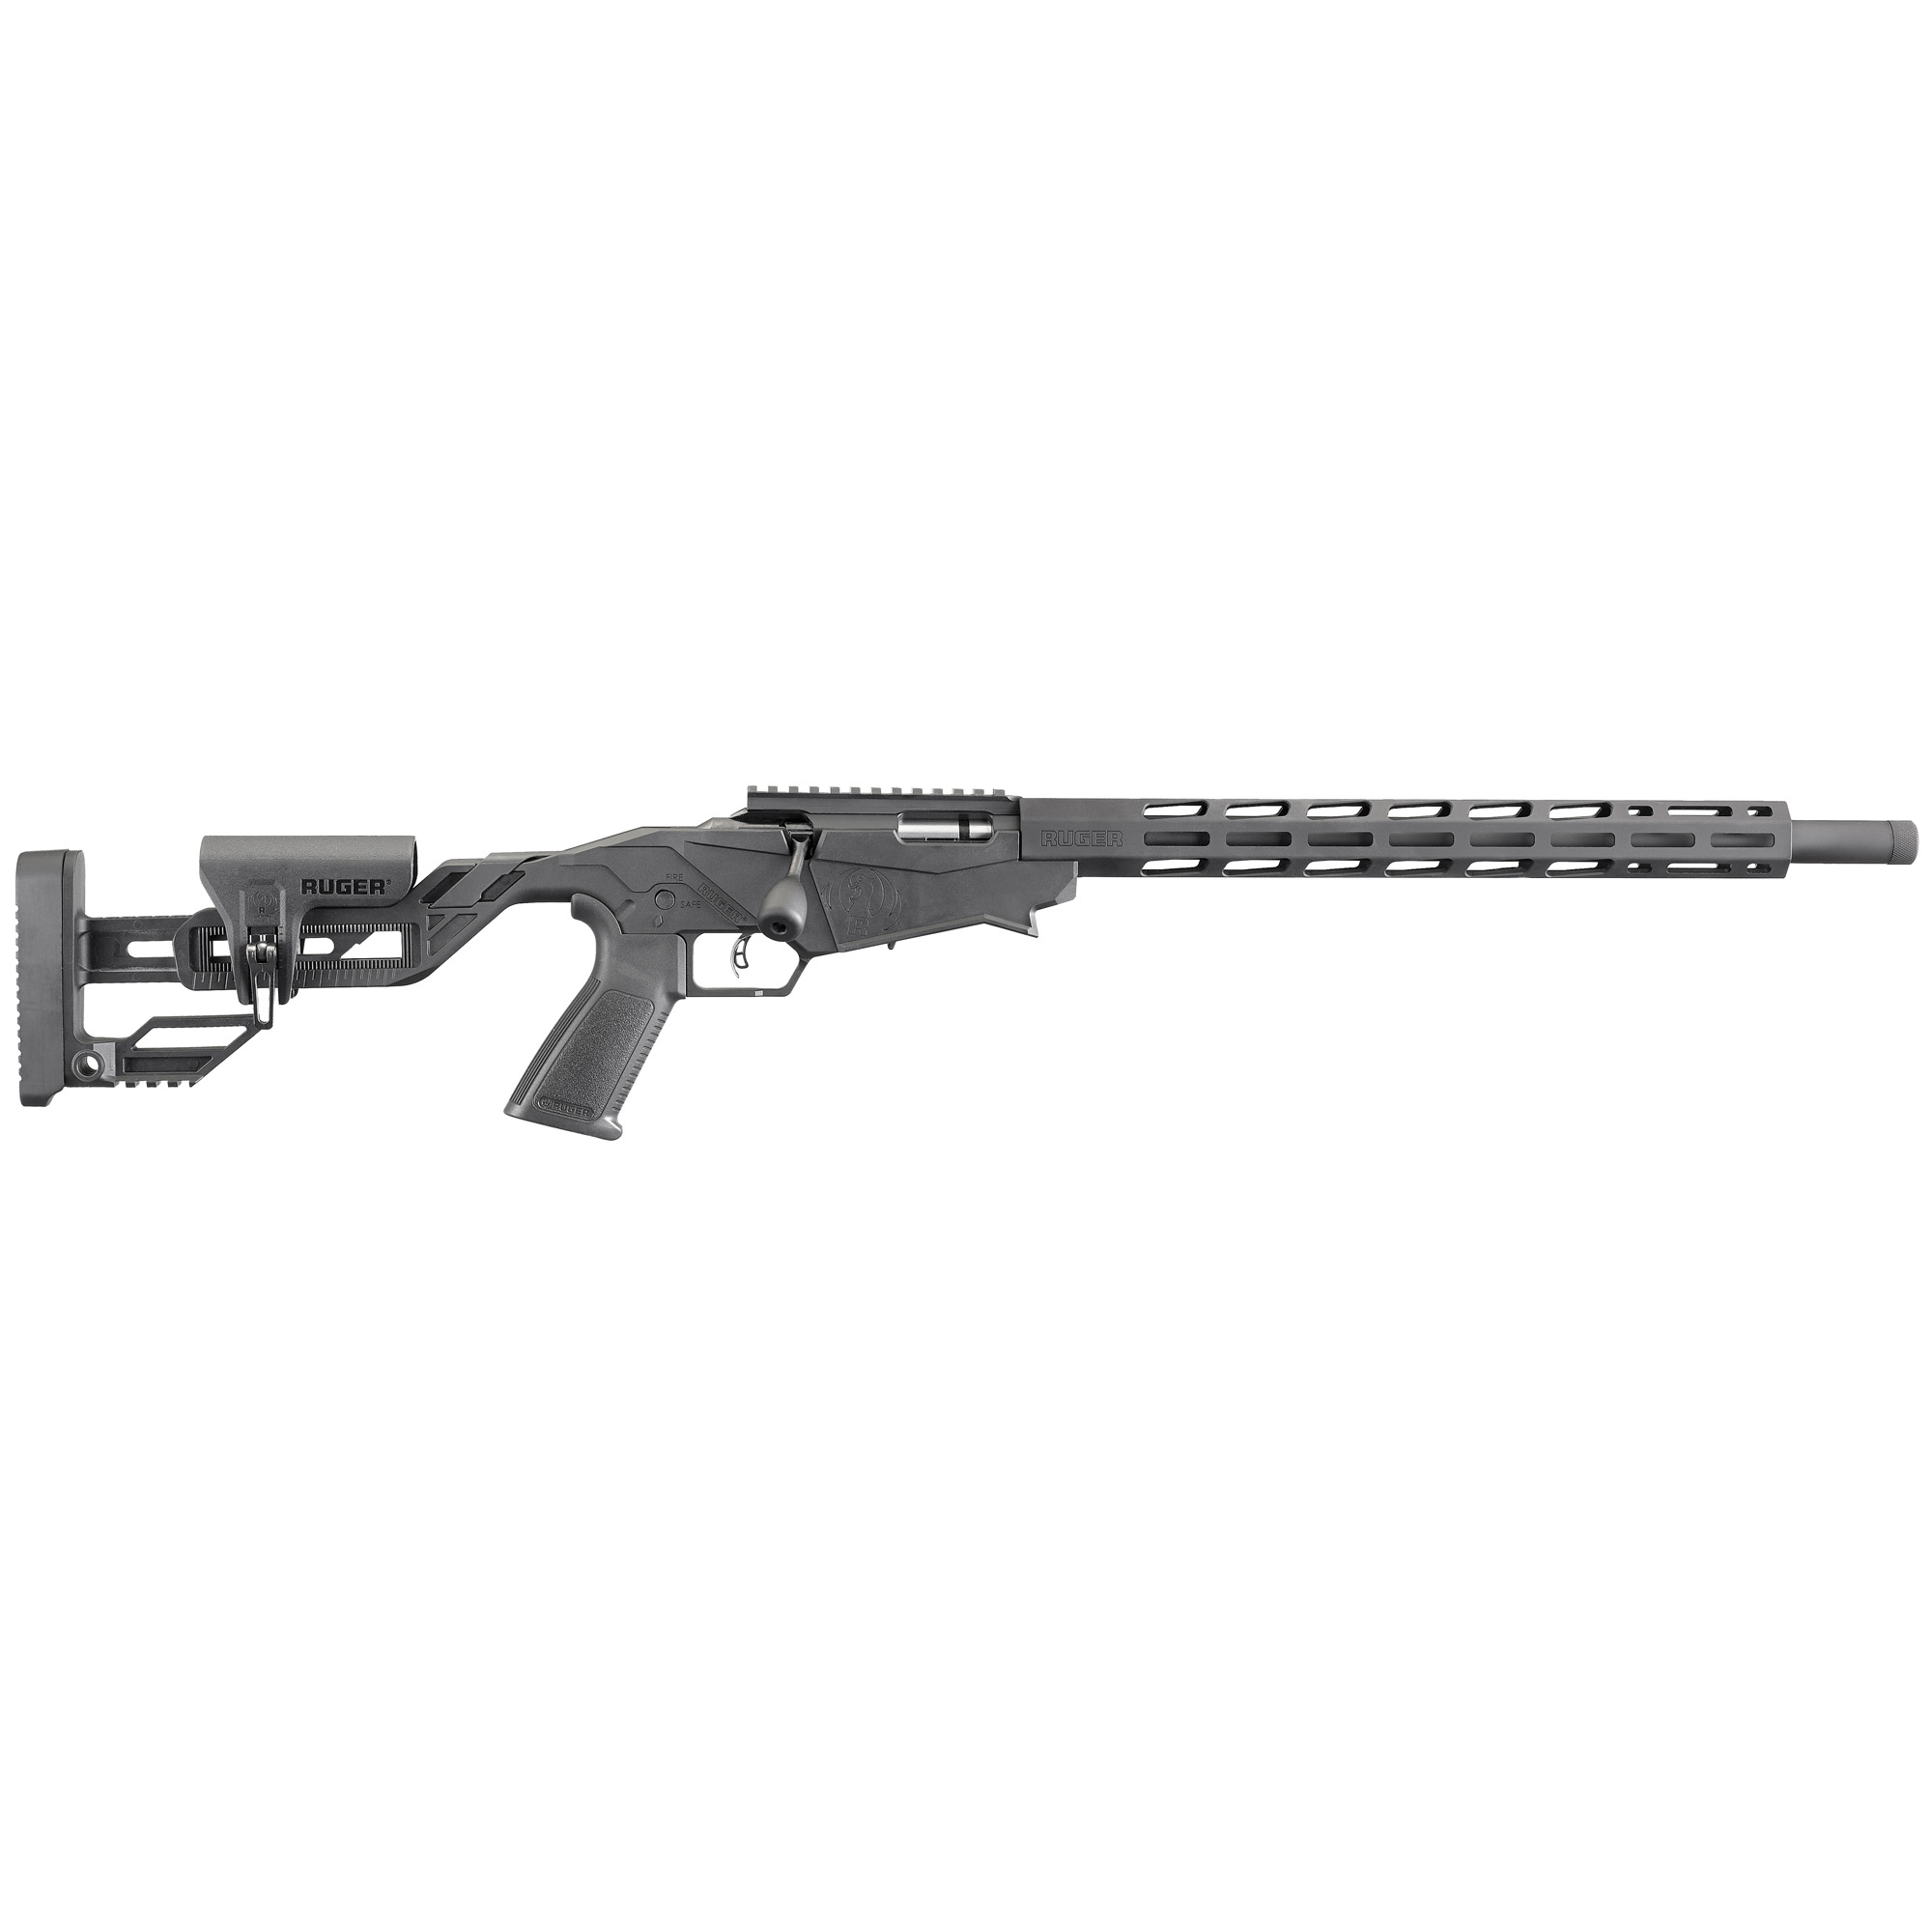 The Ruger Precision Rimfire features a Quick-Fit adjustable Precision Rimfire stock that allows length of pull and comb height to be quickly and easily adjusted.